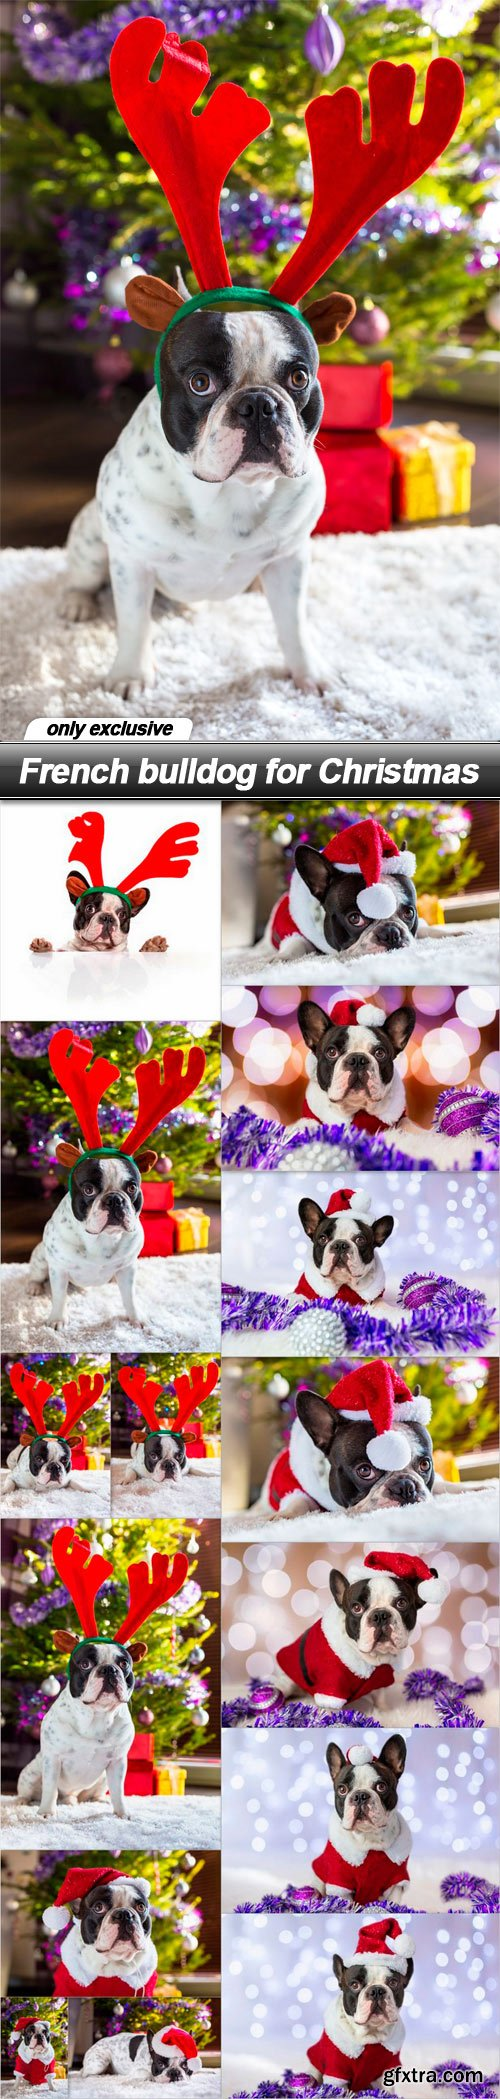 French bulldog for Christmas - 15 UHQ JPEG